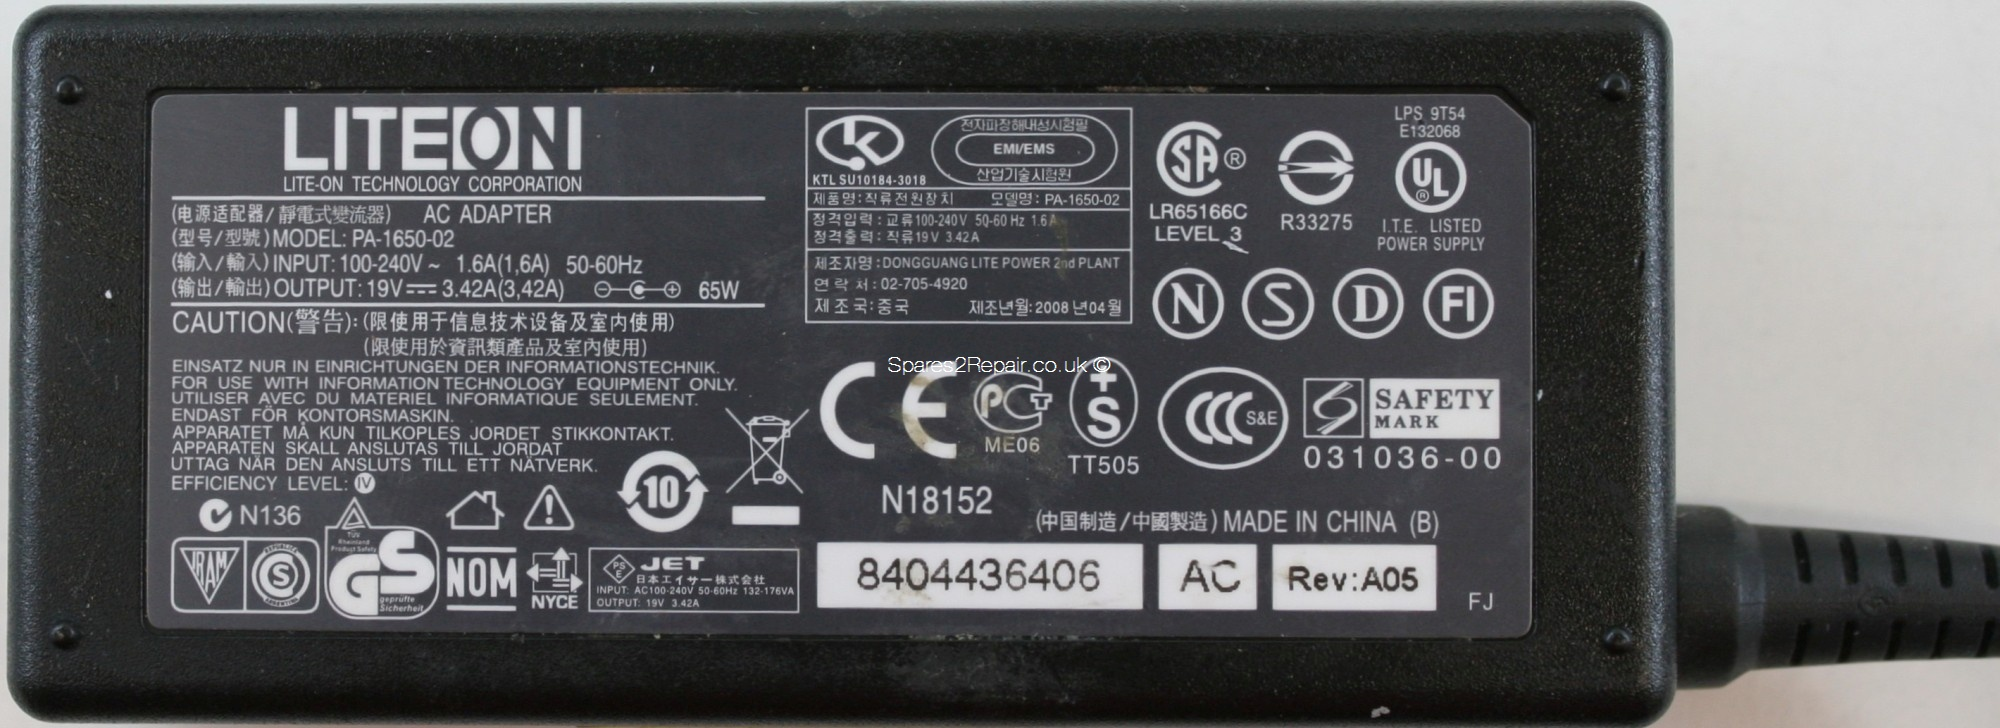 Lite-On - Charger - PA-1650-02 - 19v 3.42A (Original)